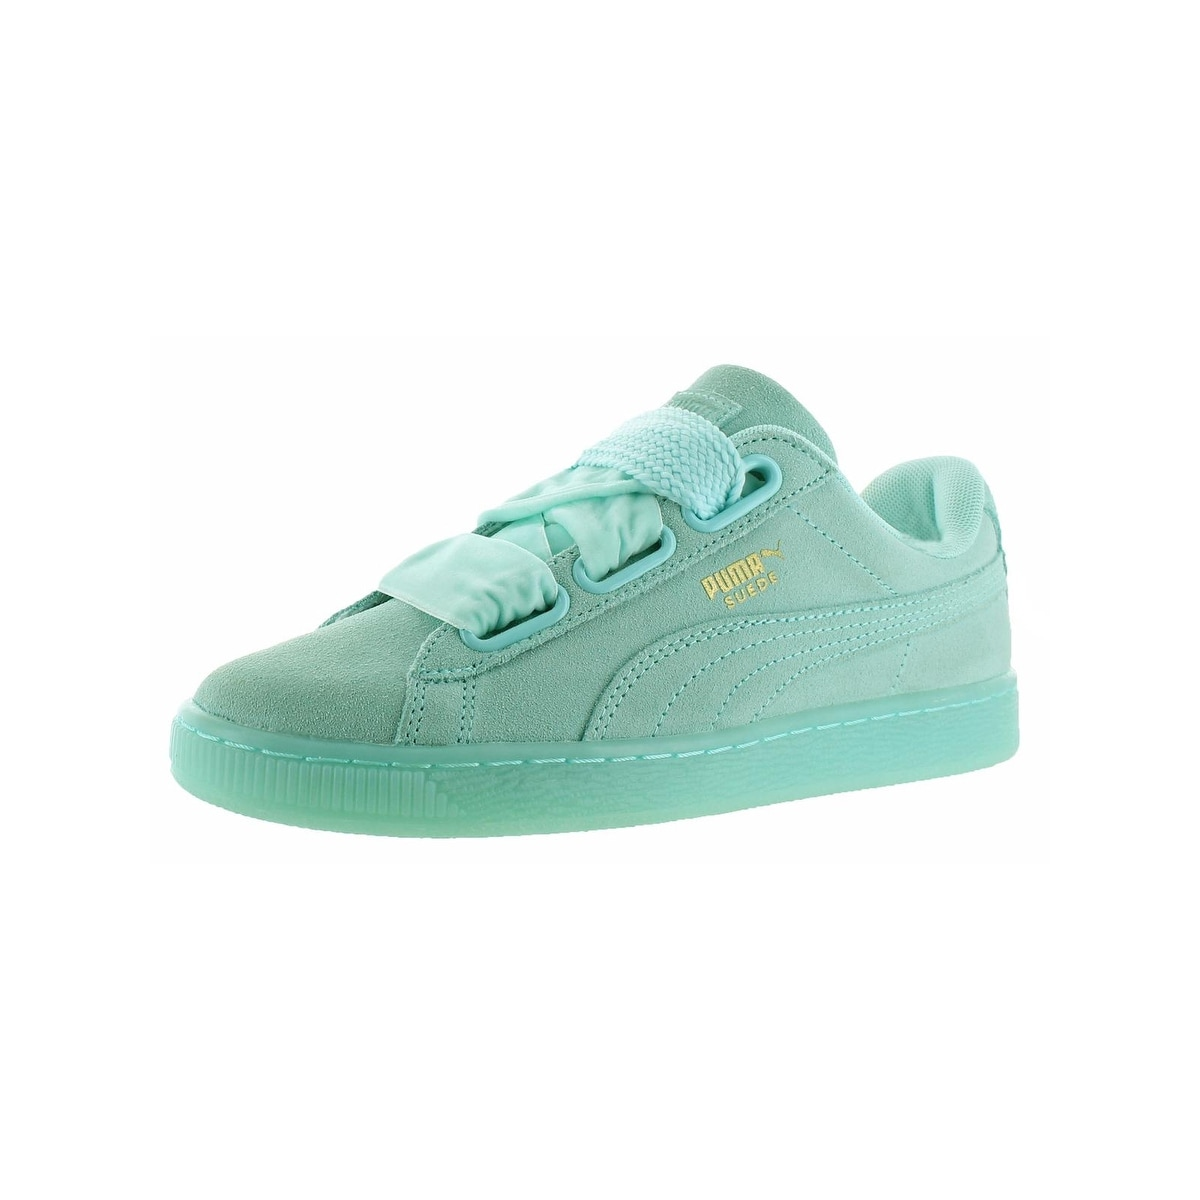 bd90d74e70a5a Blue Puma Shoes